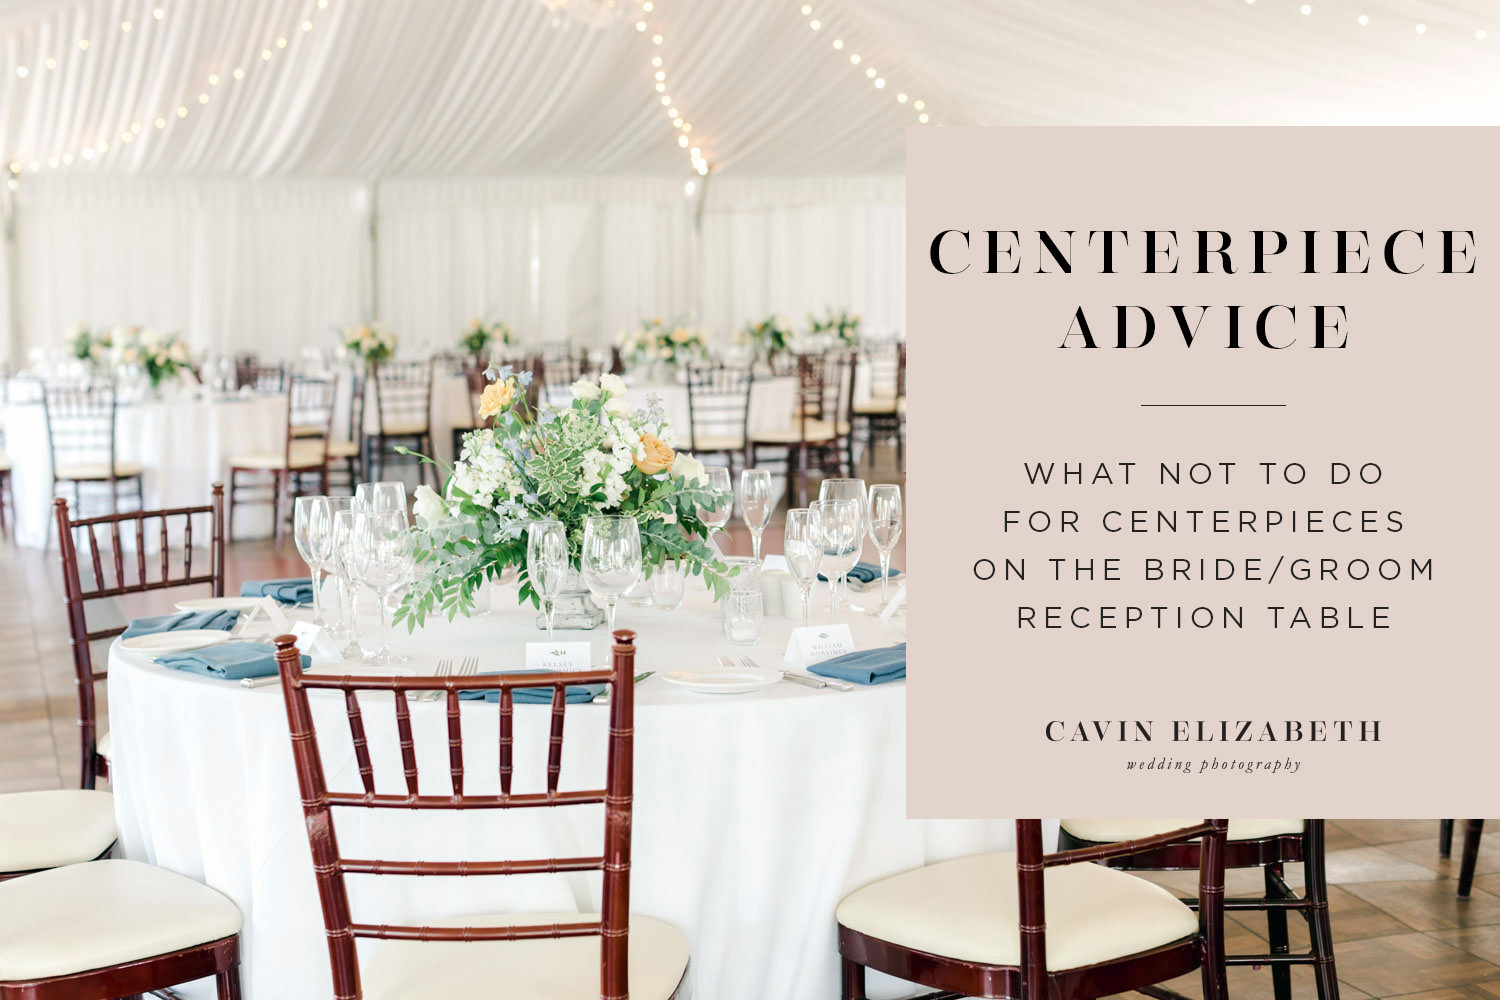 Centerpieces on the Bride and Groom Table: What Not to Do